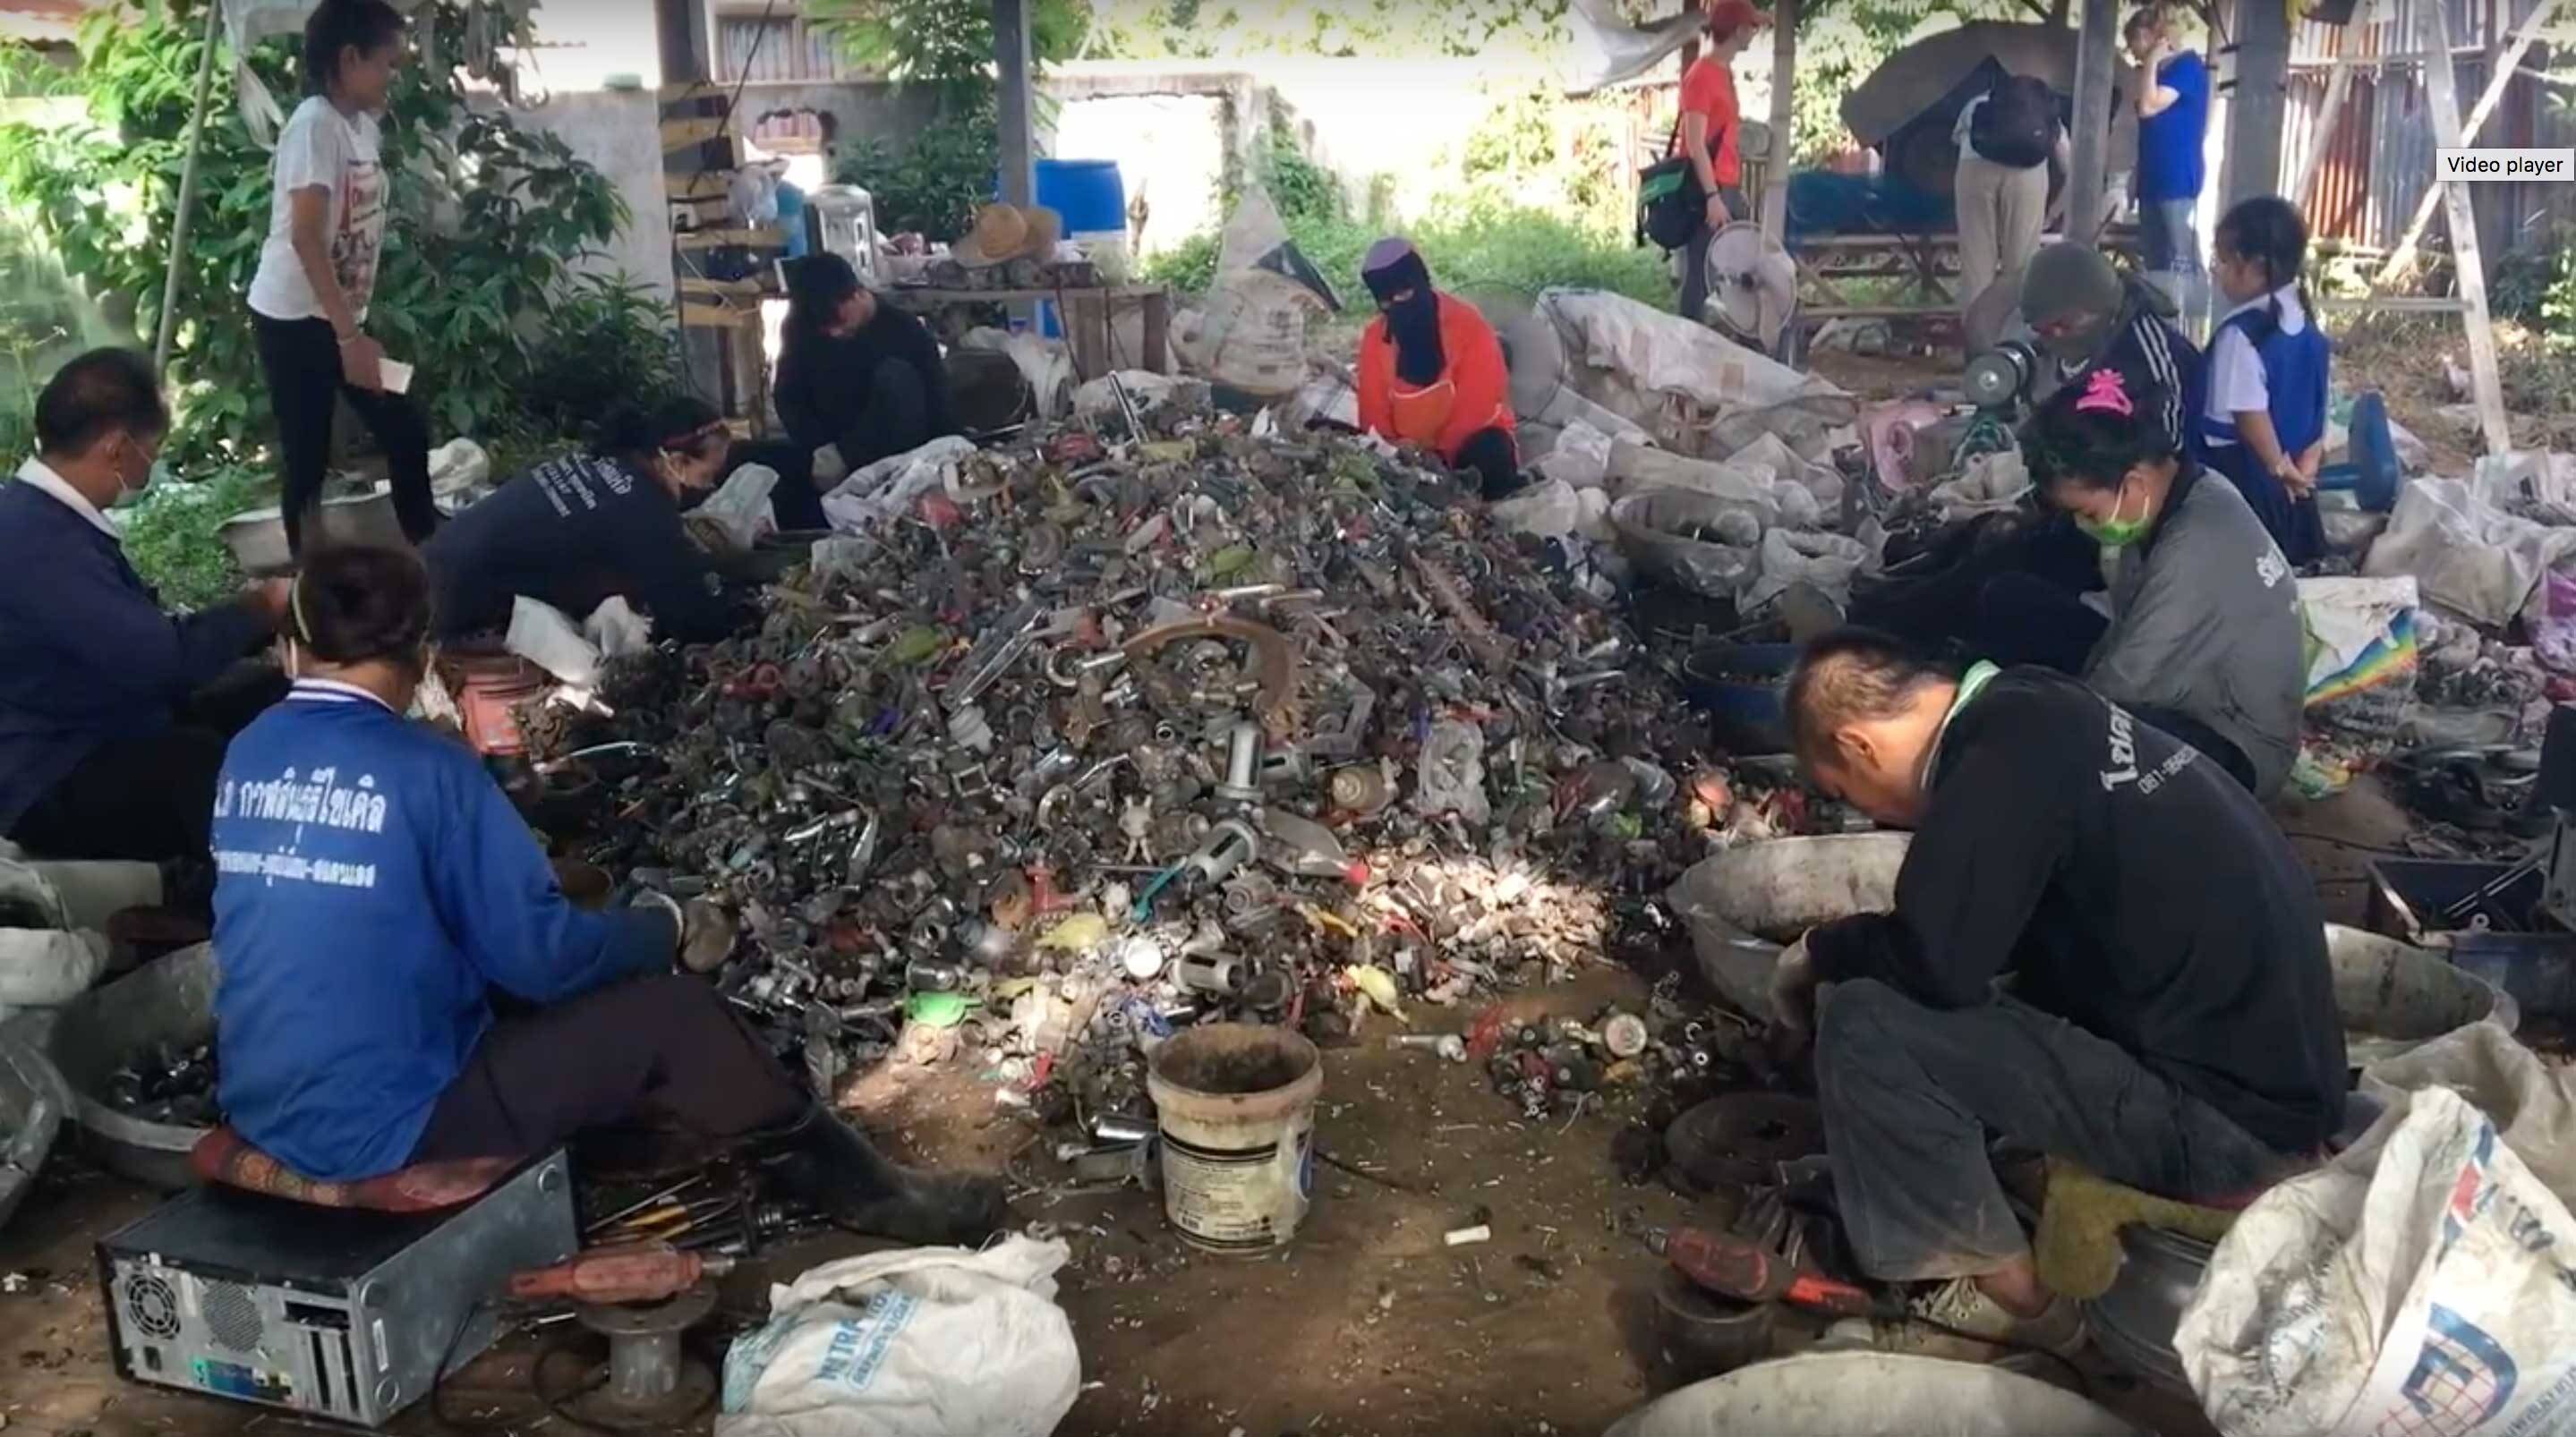 Improving working conditions for e-waste recyclers